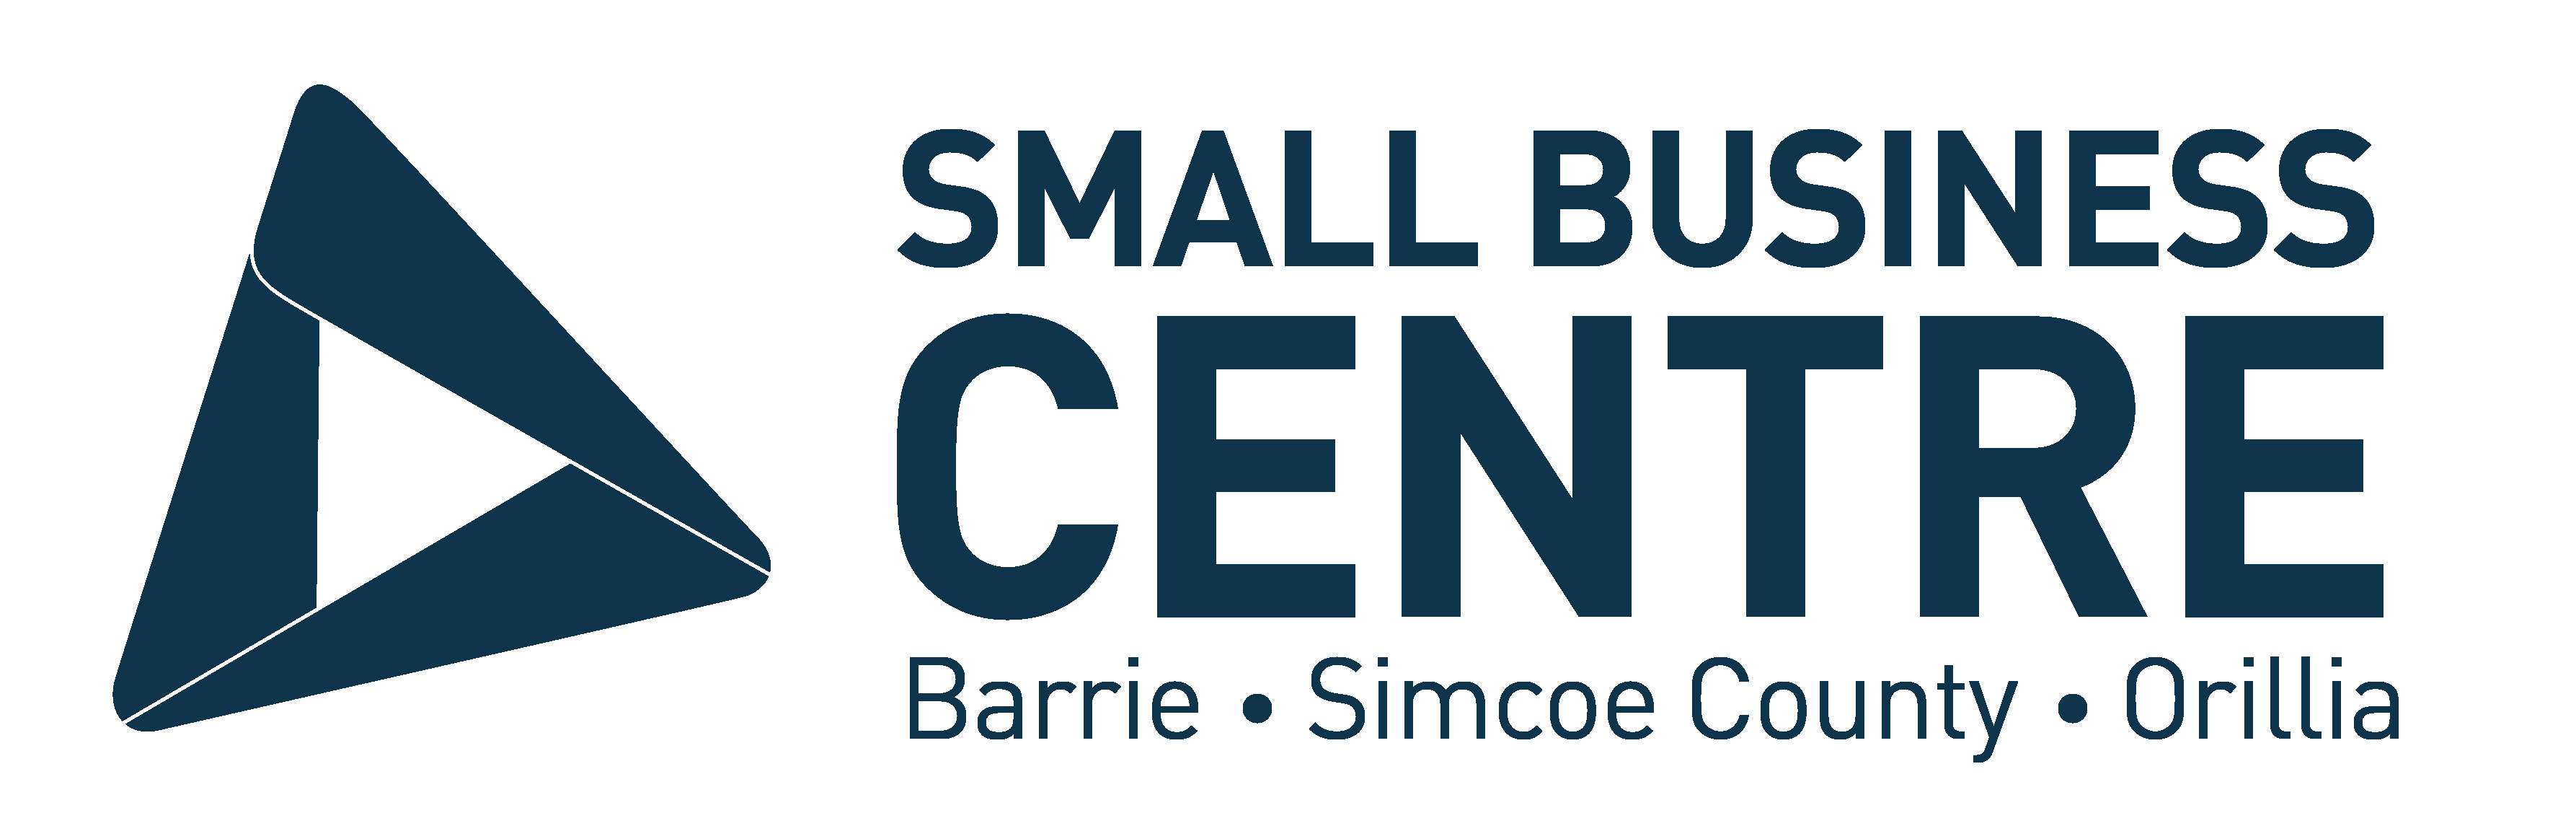 Start and Grow your Business - Small Business Centre: Barrie